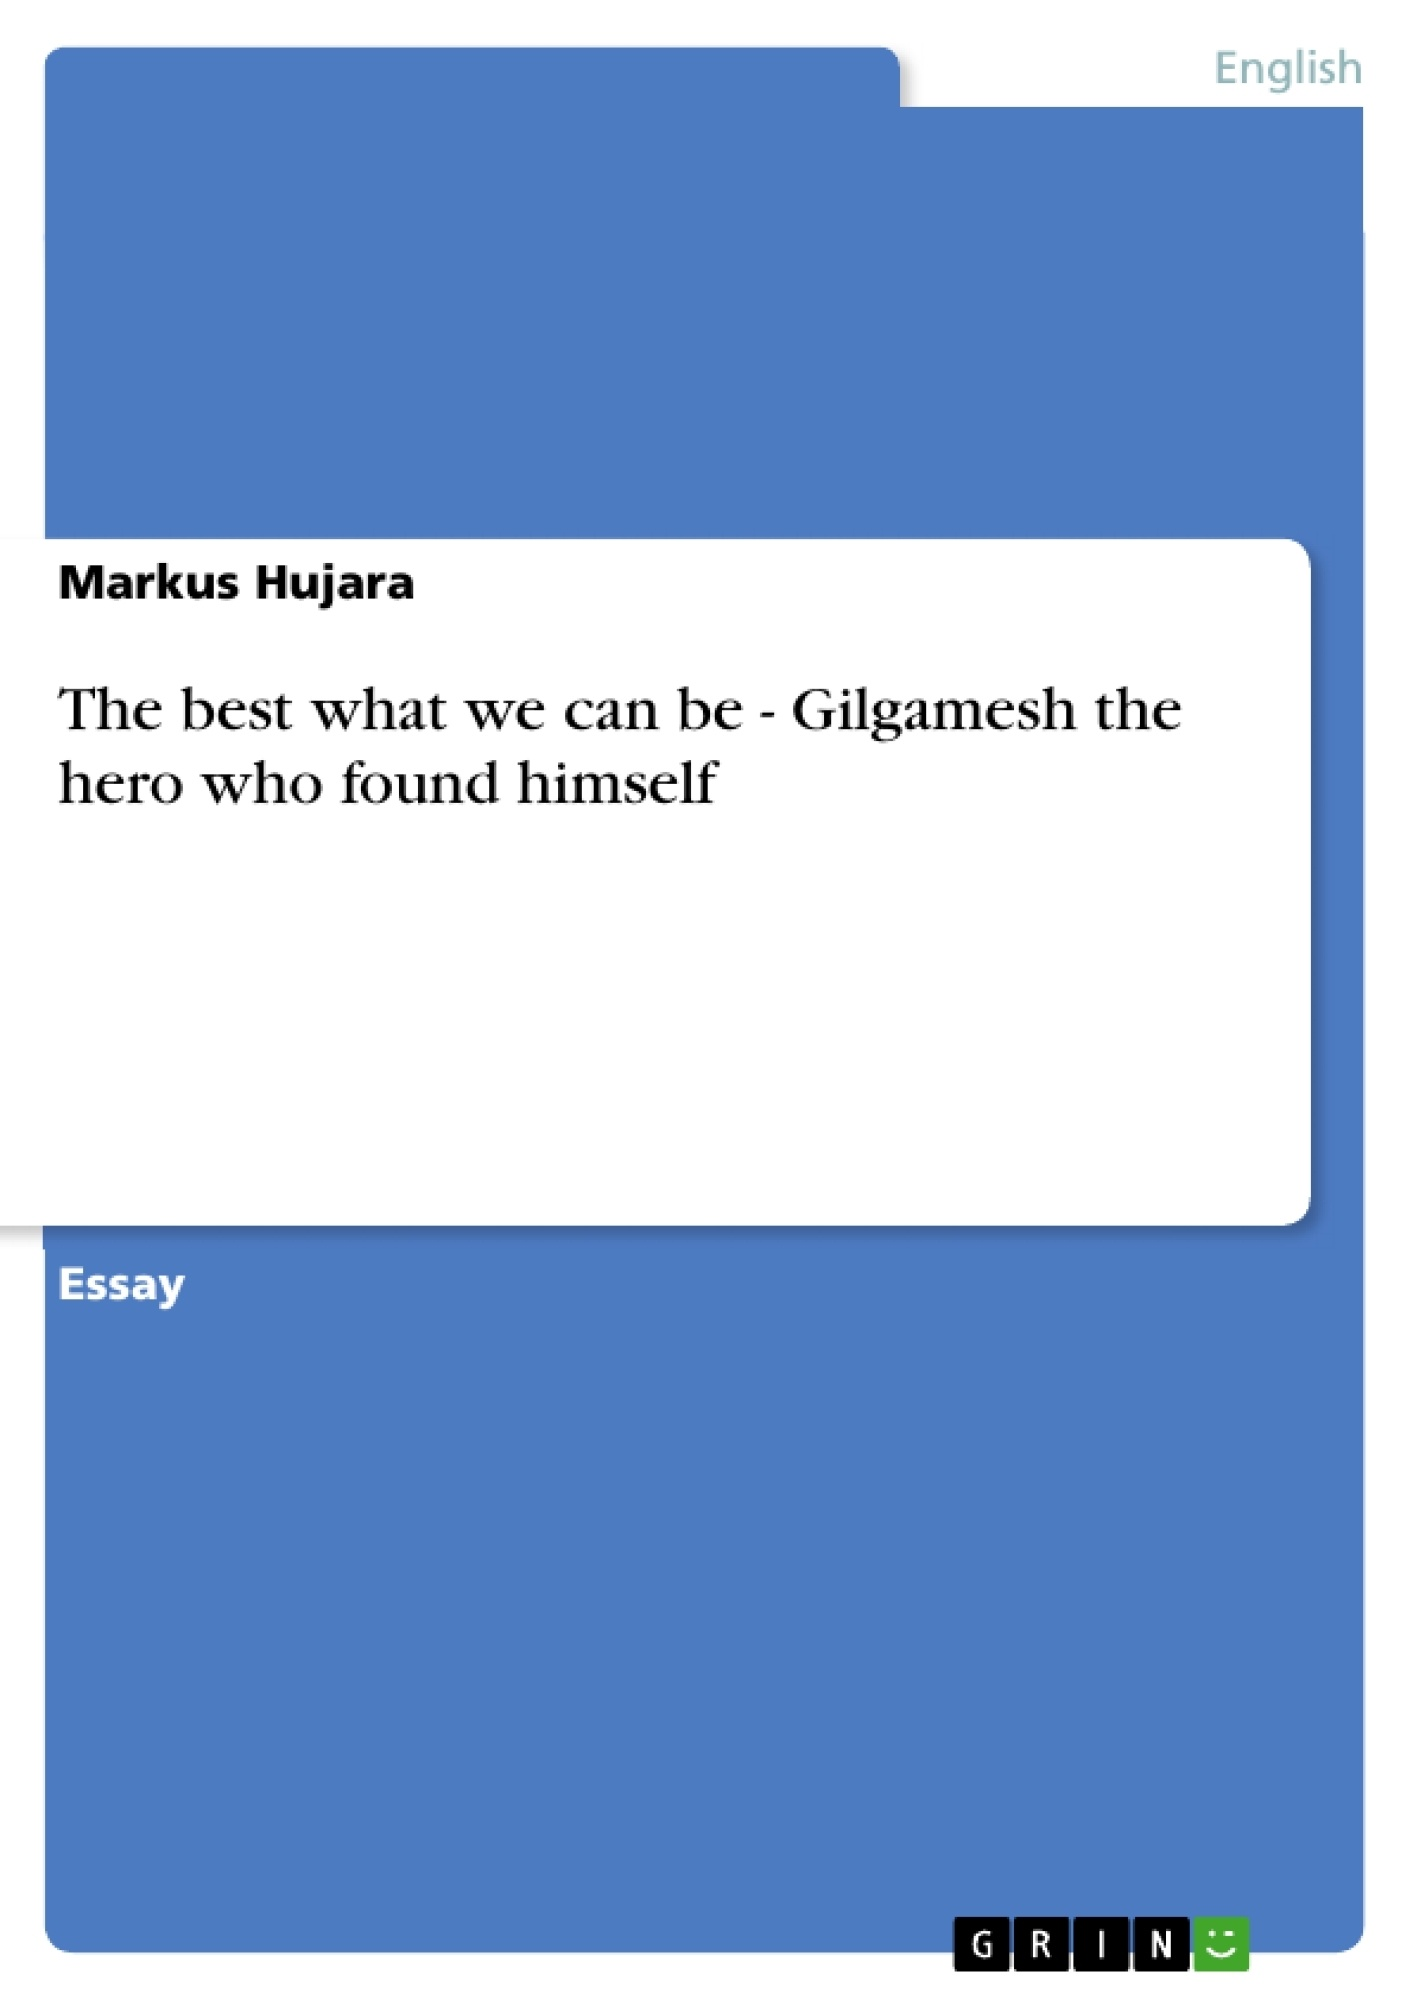 Title: The  best what we can be - Gilgamesh the hero who found himself